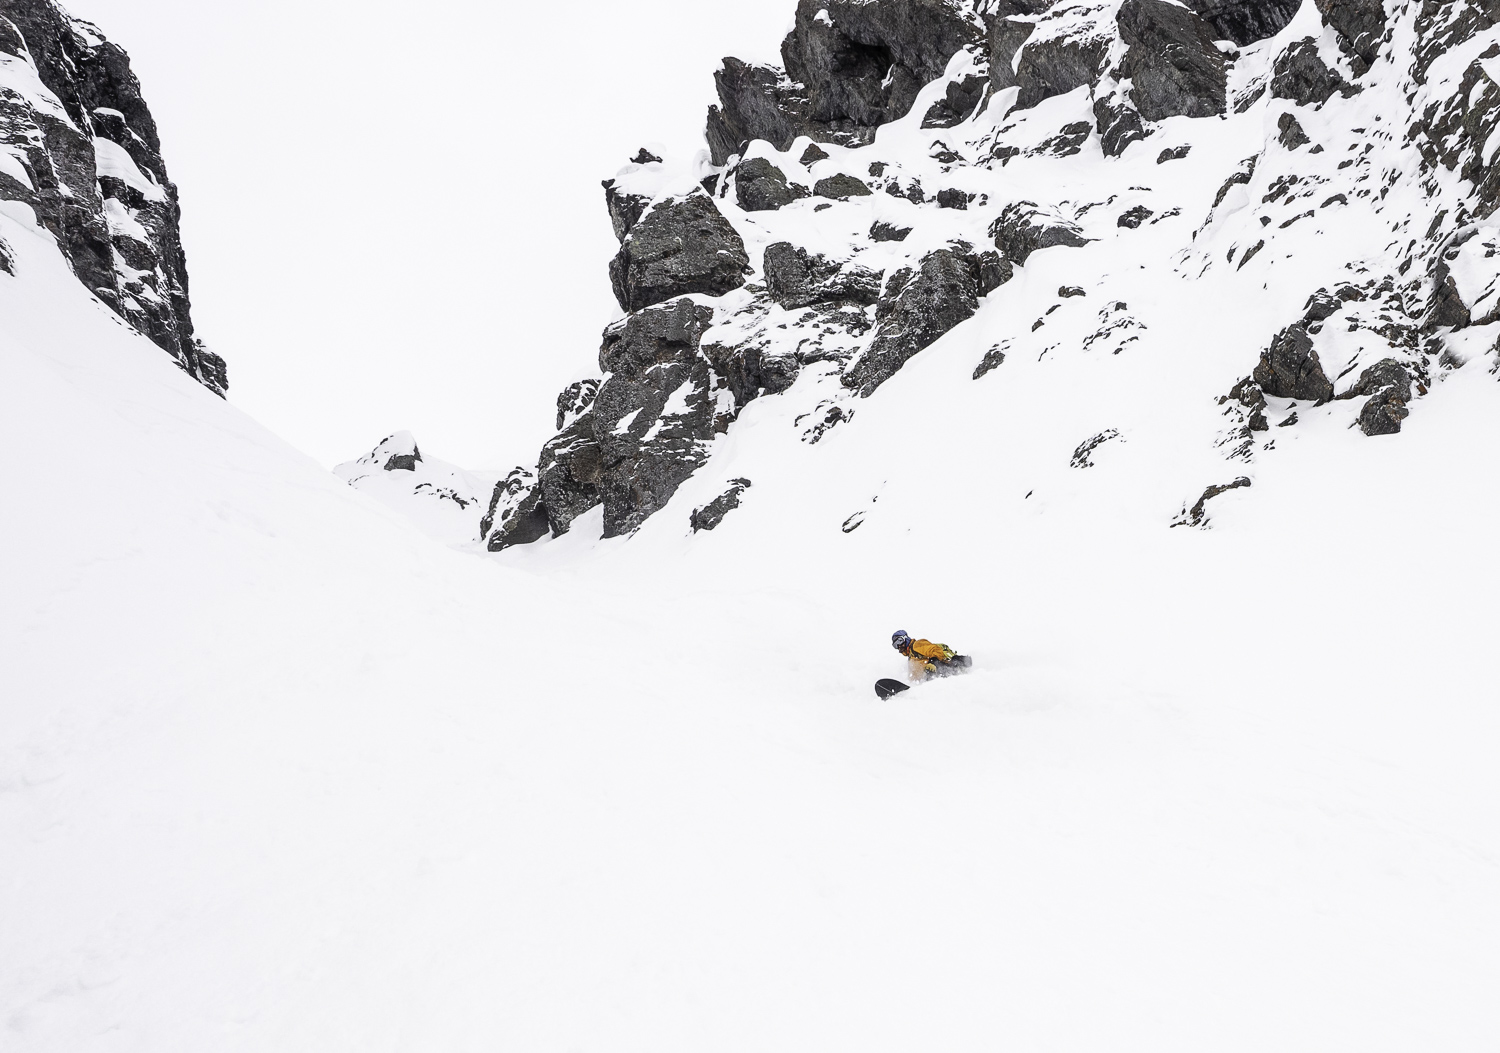 Spring Pow on the Shaddy Sides - Todd